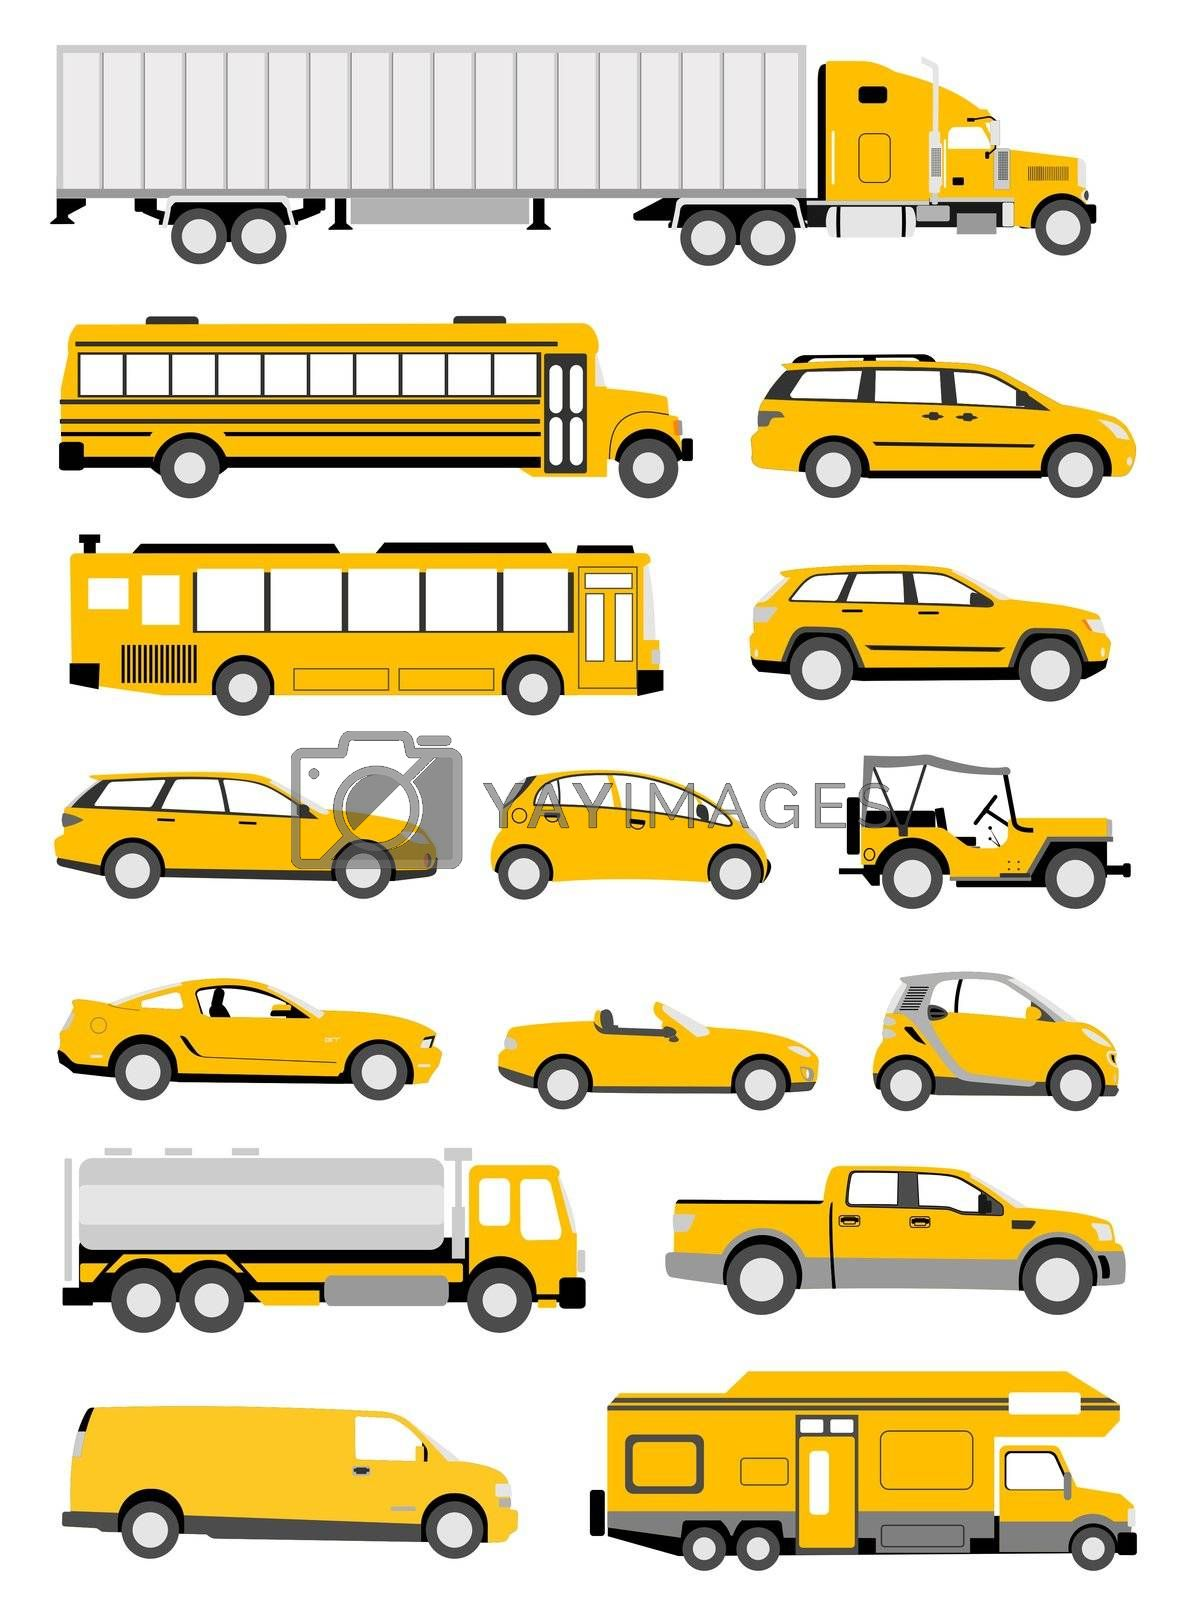 An illustration of transportation icons in yellow color